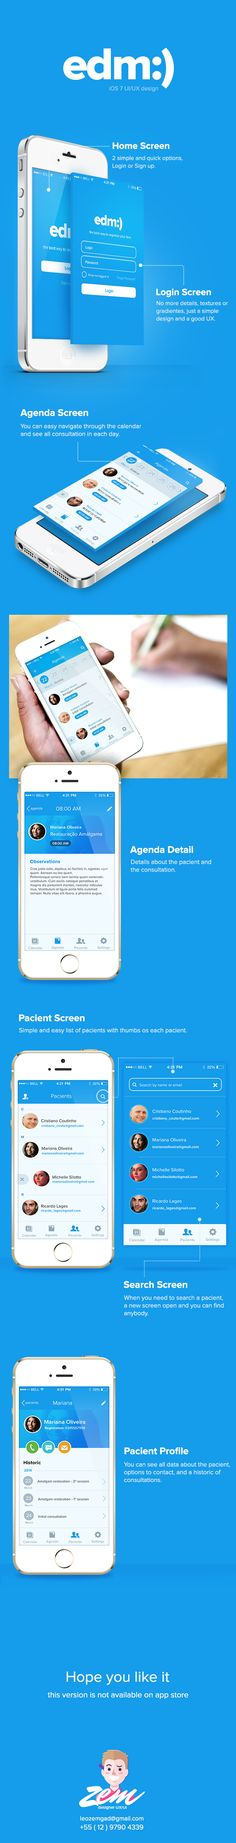 EDM - New mobile design by Leonardo Zem, via Behance. Tendencies for 2014 in UI/UX design. Gui Interface, User Interface Design, Mobile Ui Design, App Ui Design, Site Design, Flat Design, Design Design, App Design Inspiration, Mobiles